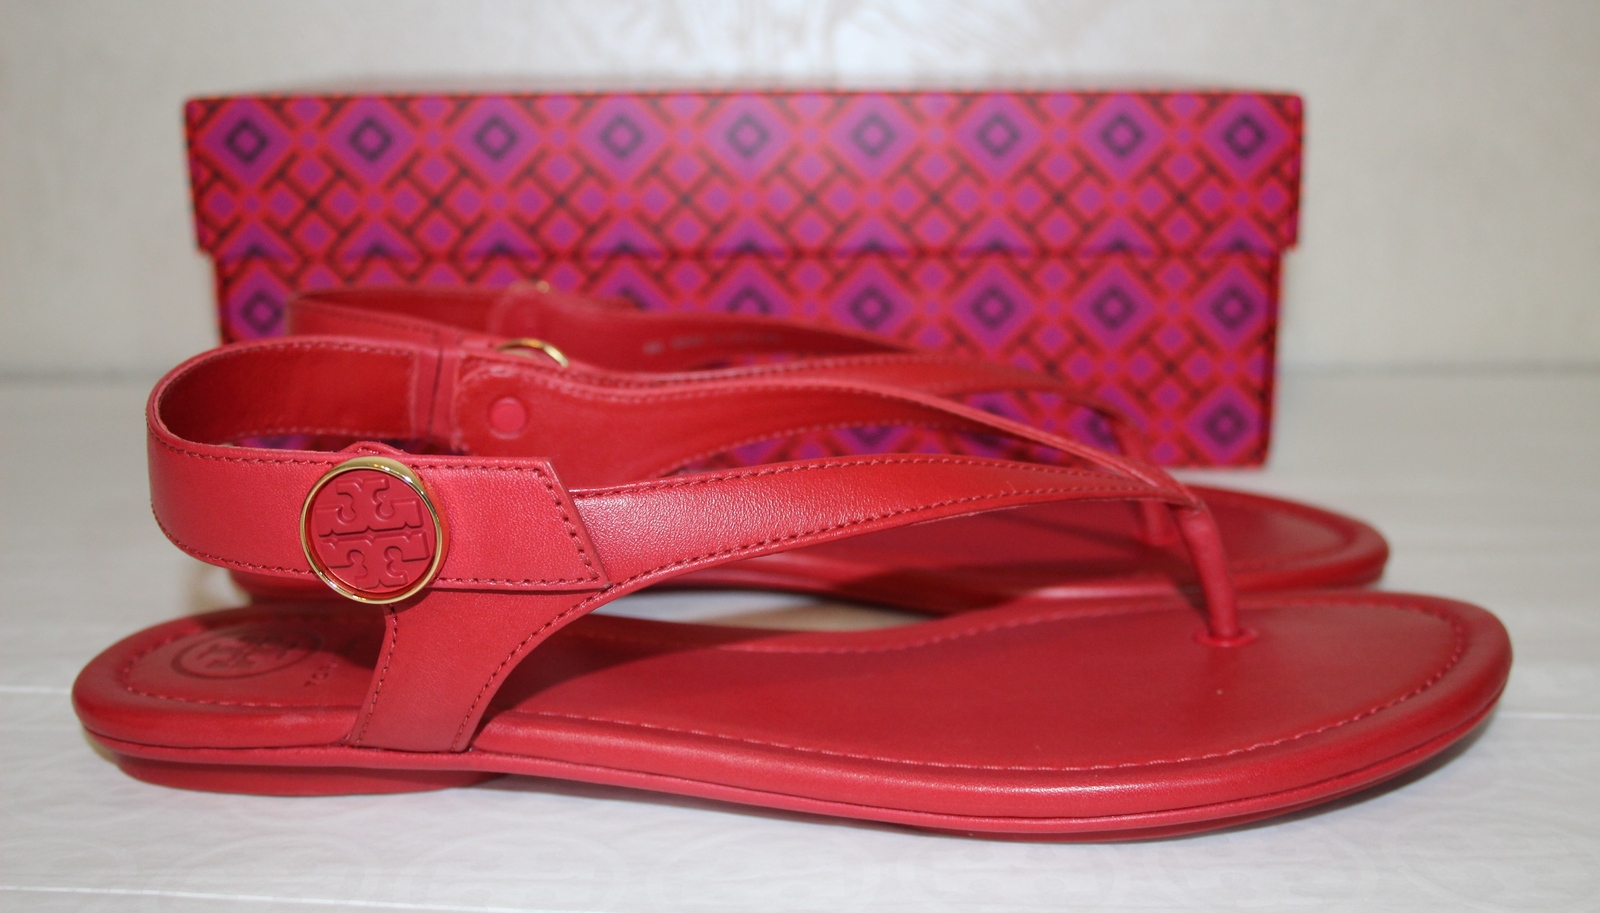 264d2f1e13be Tory Burch Minnie Travel Sandal Size 8 Red Leather Thong Slingback  200